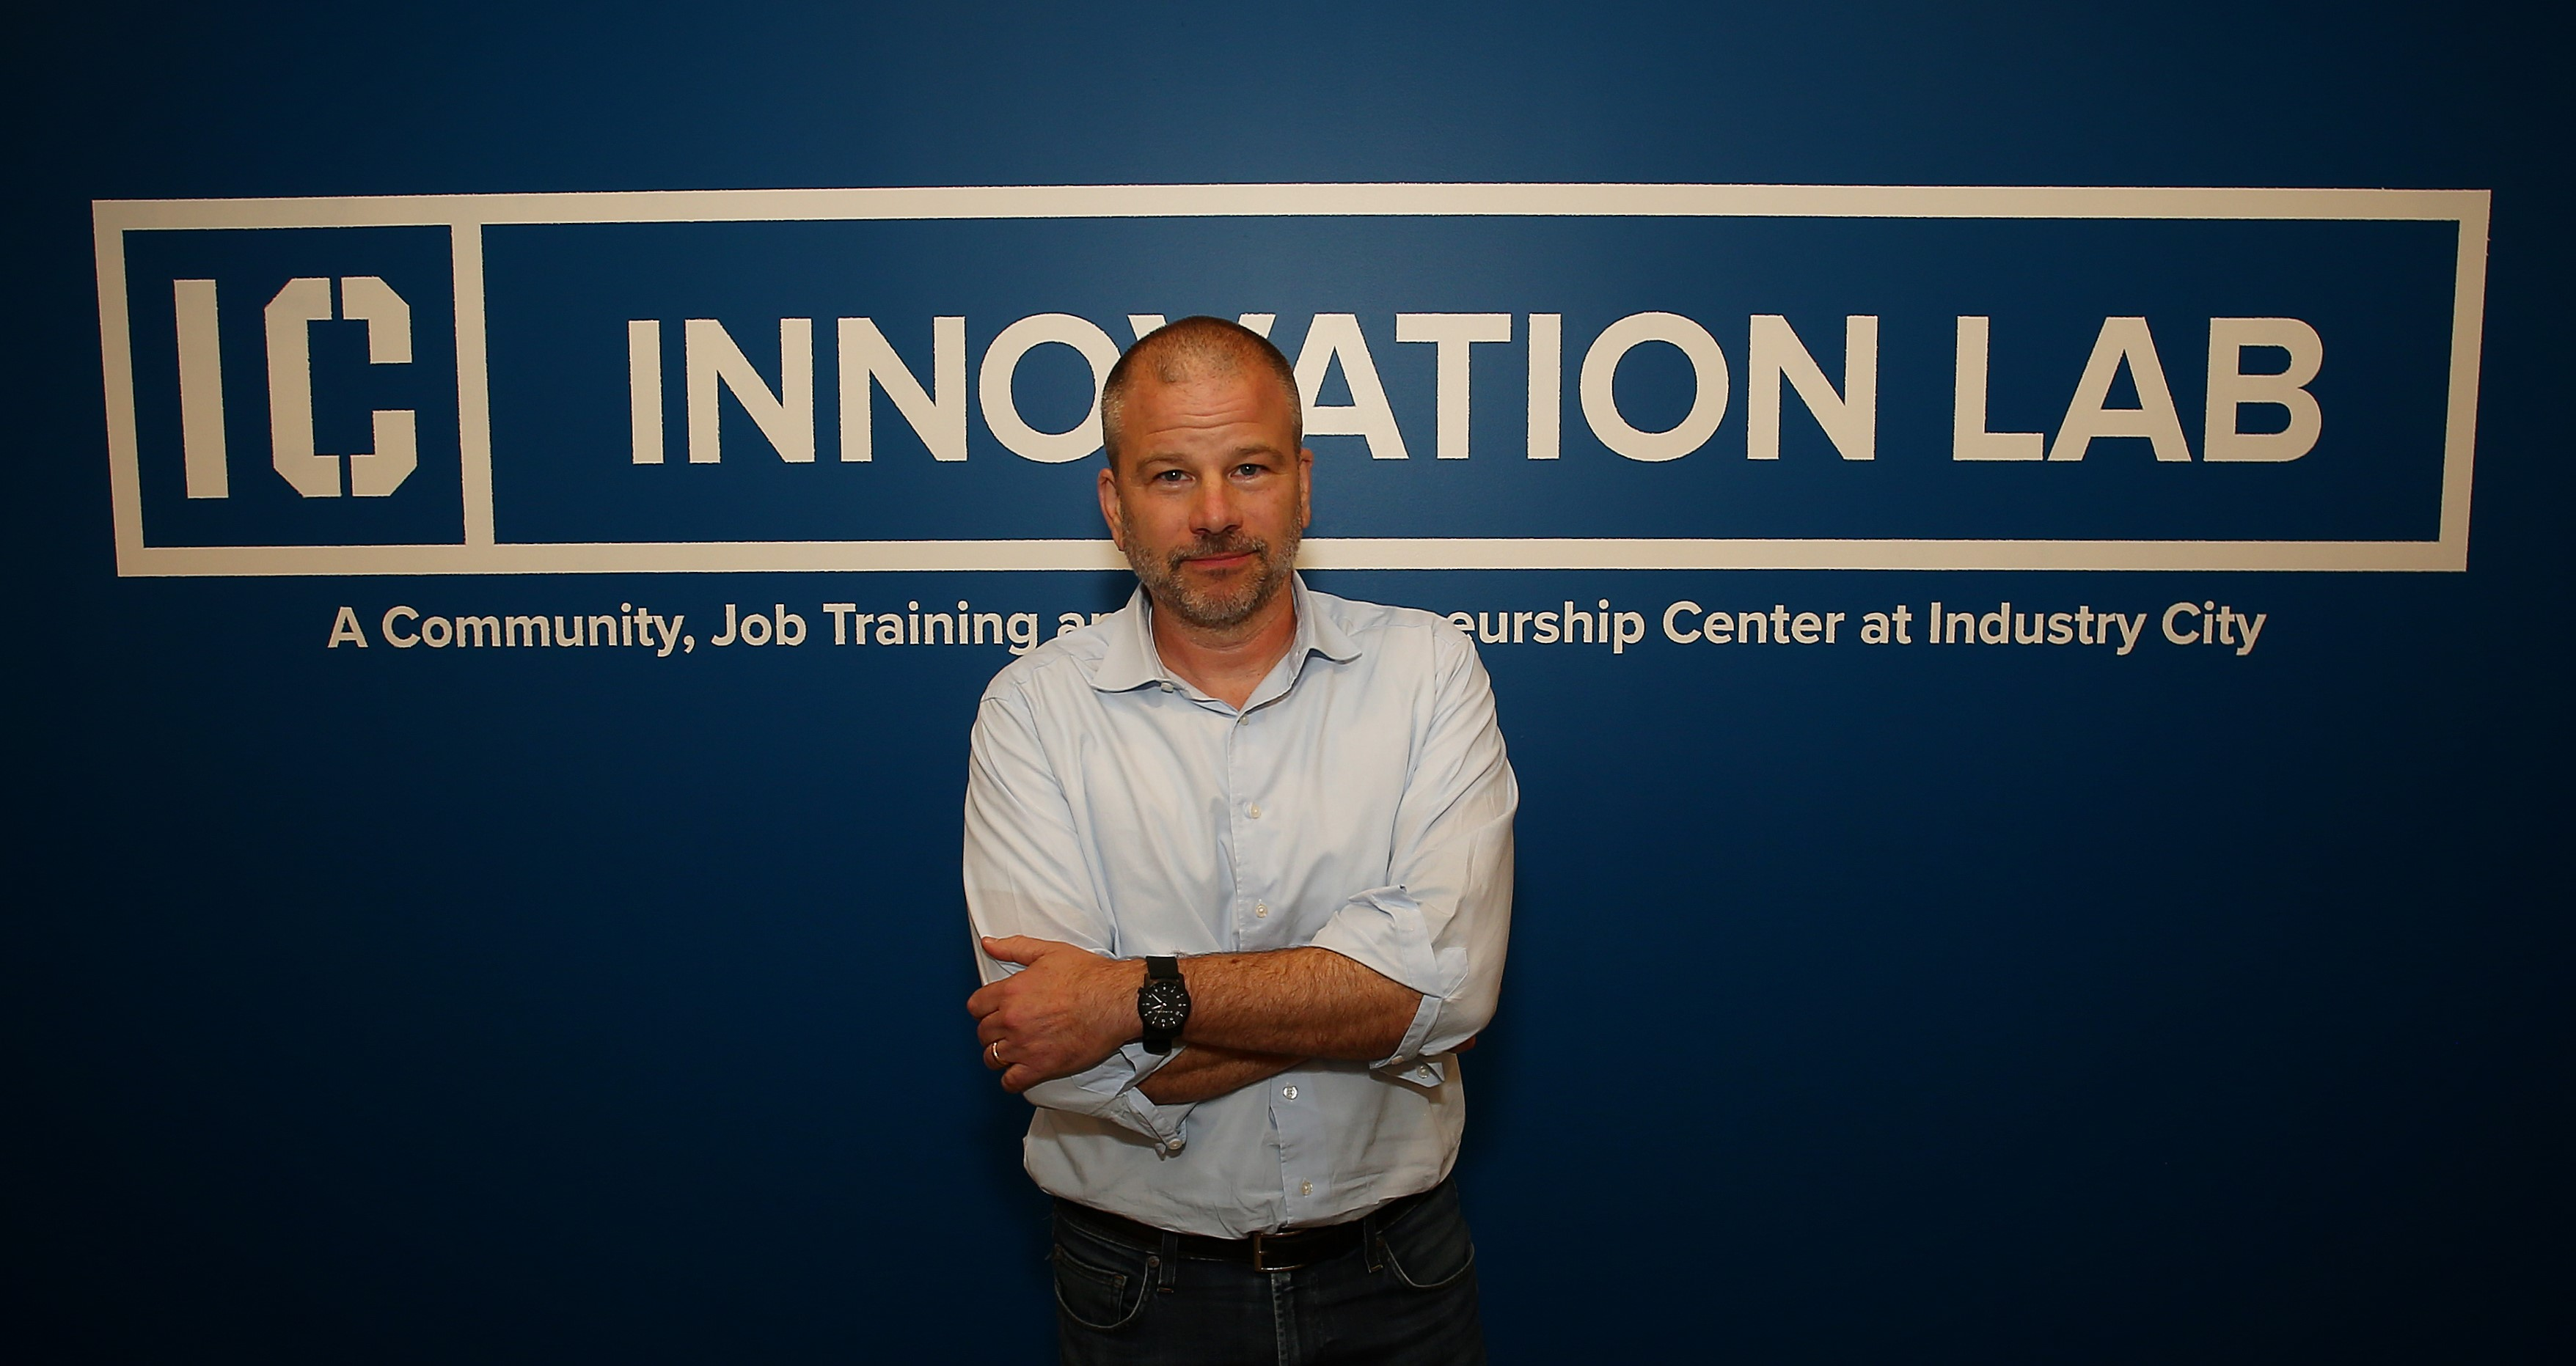 Industry City CEO Andrew Kimball in the Innovation Lab. Photo by Andy Katz